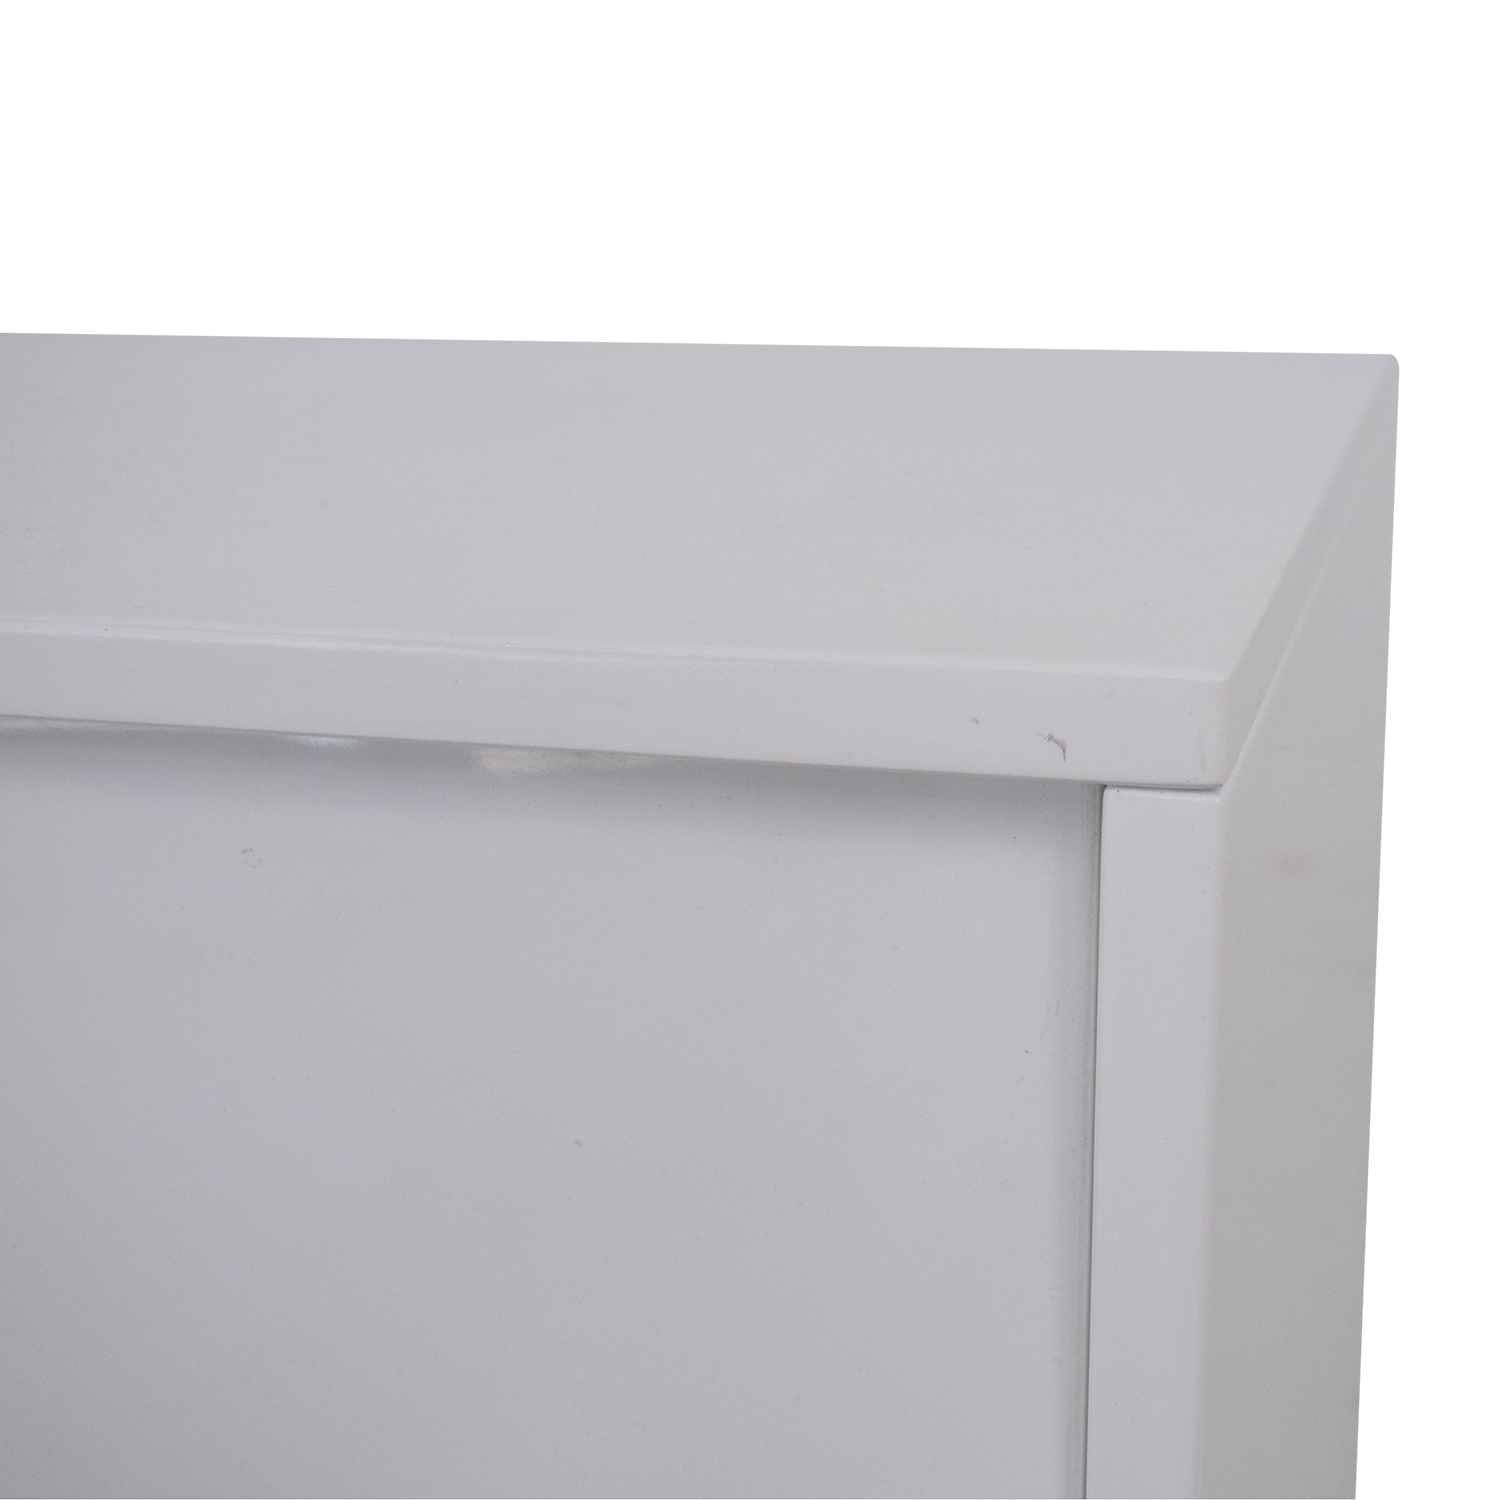 CB2 CB2 Shake Tall Four Drawer Chest coupon